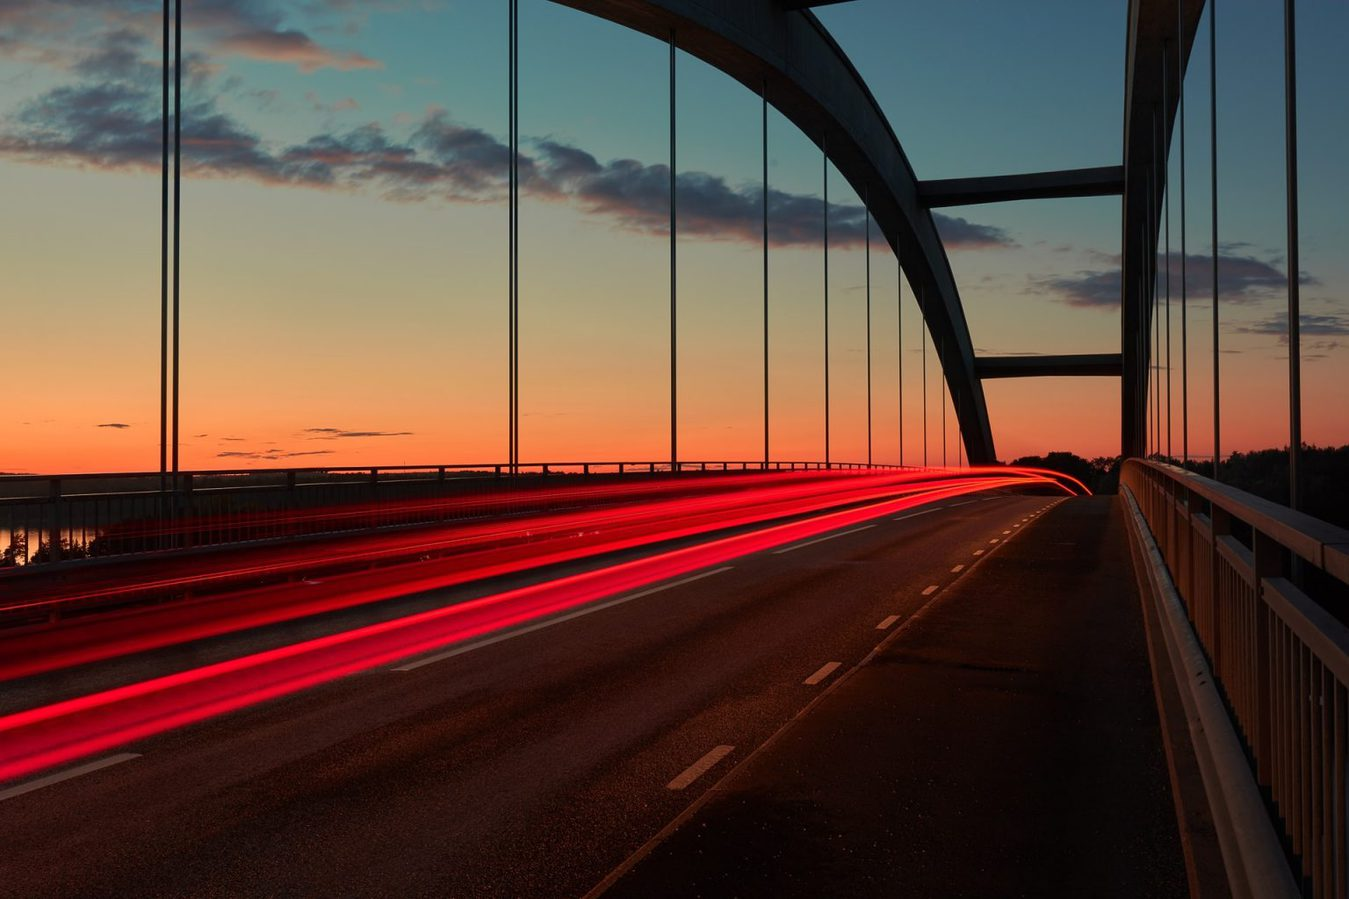 Blurred car lights on a bridge at sunset